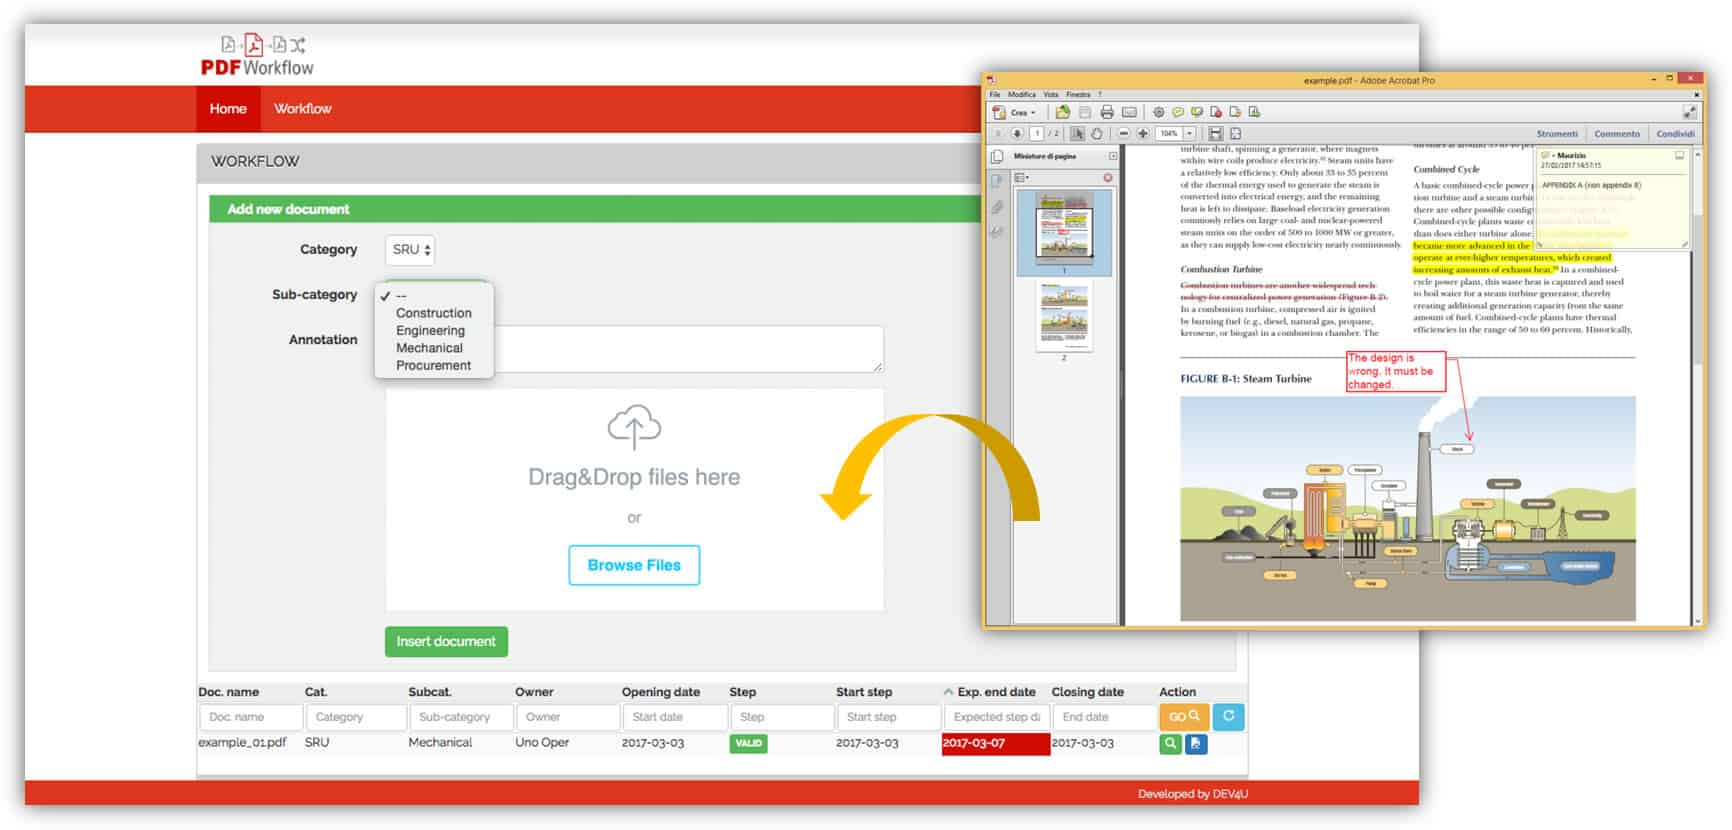 Anteprima Software Workflow di revisione documentale ed approvativo - PDF WORKFLOW